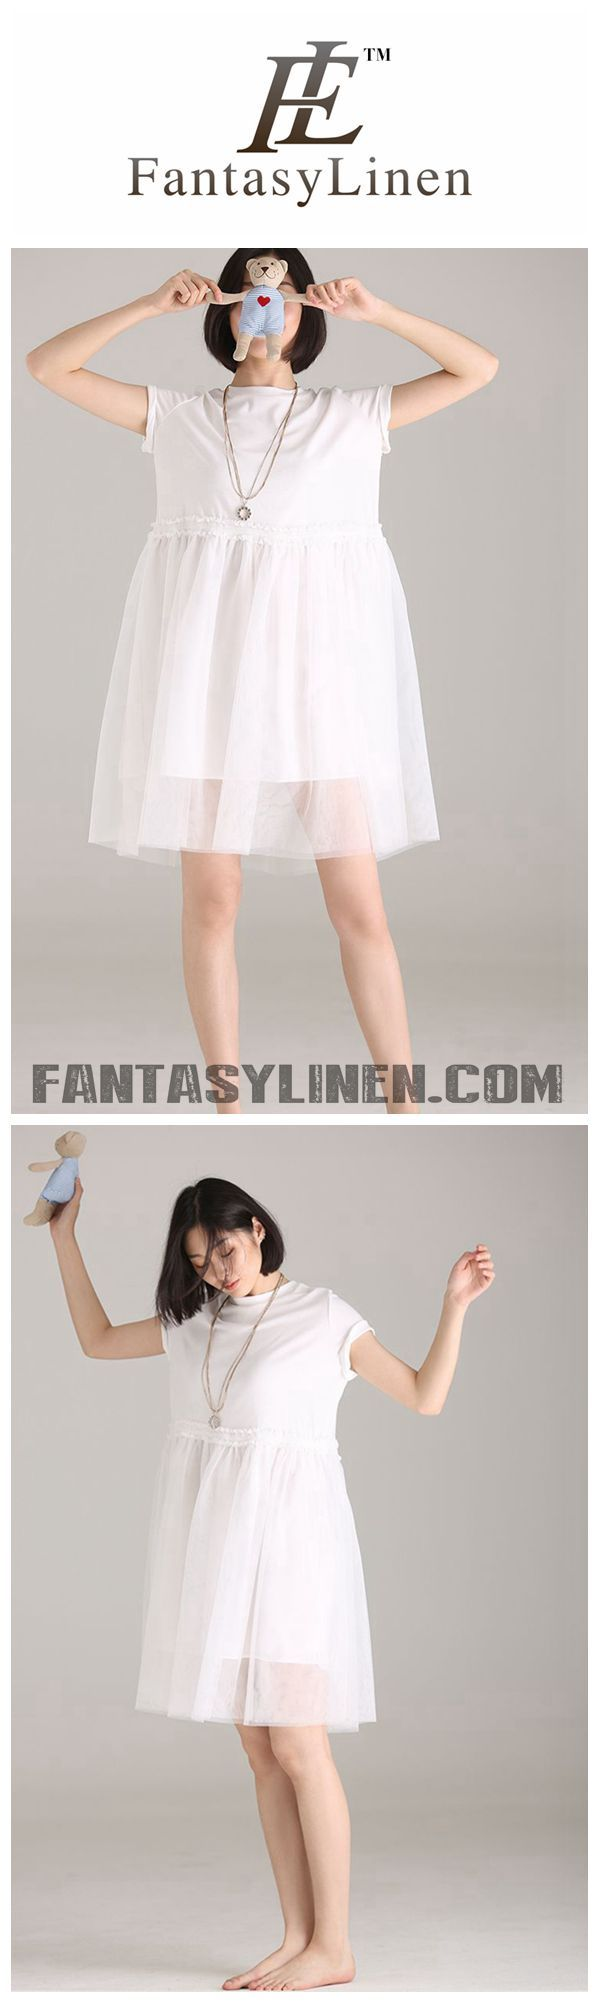 SUMMER CUTE QUILTED WHITE DRESSES WOMEN LOOSE CLOTHES Q8823 ... c919edb94